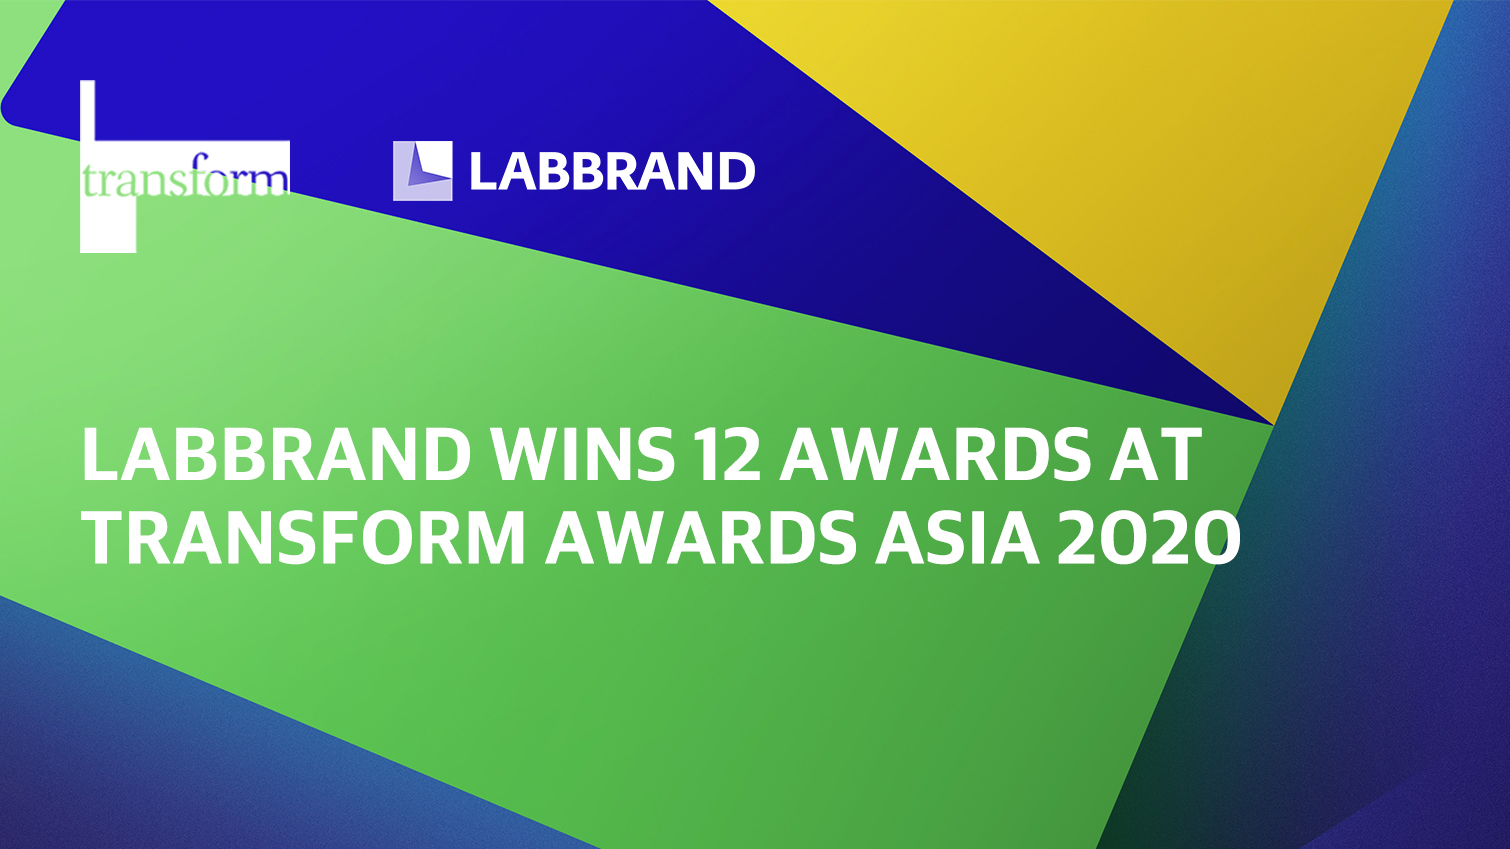 Labbrand Wins at the Transform Awards Asia 2020